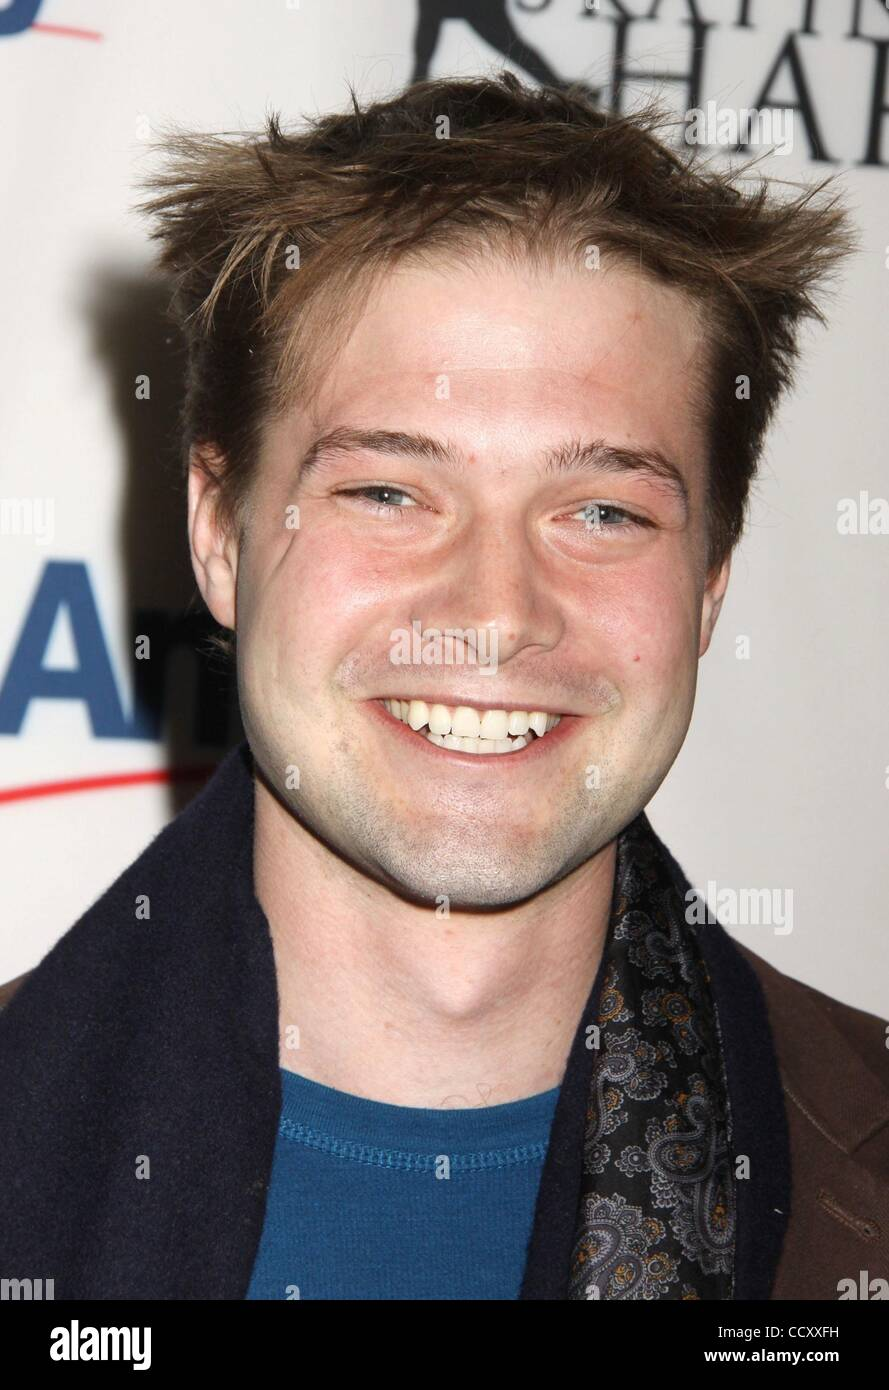 Apr 05 2010 New York New York Usa Actor Brandon Ruckdashel From Co Ed Confidential Attends The 2010 Skating With The Stars Benefit Gala For Figure